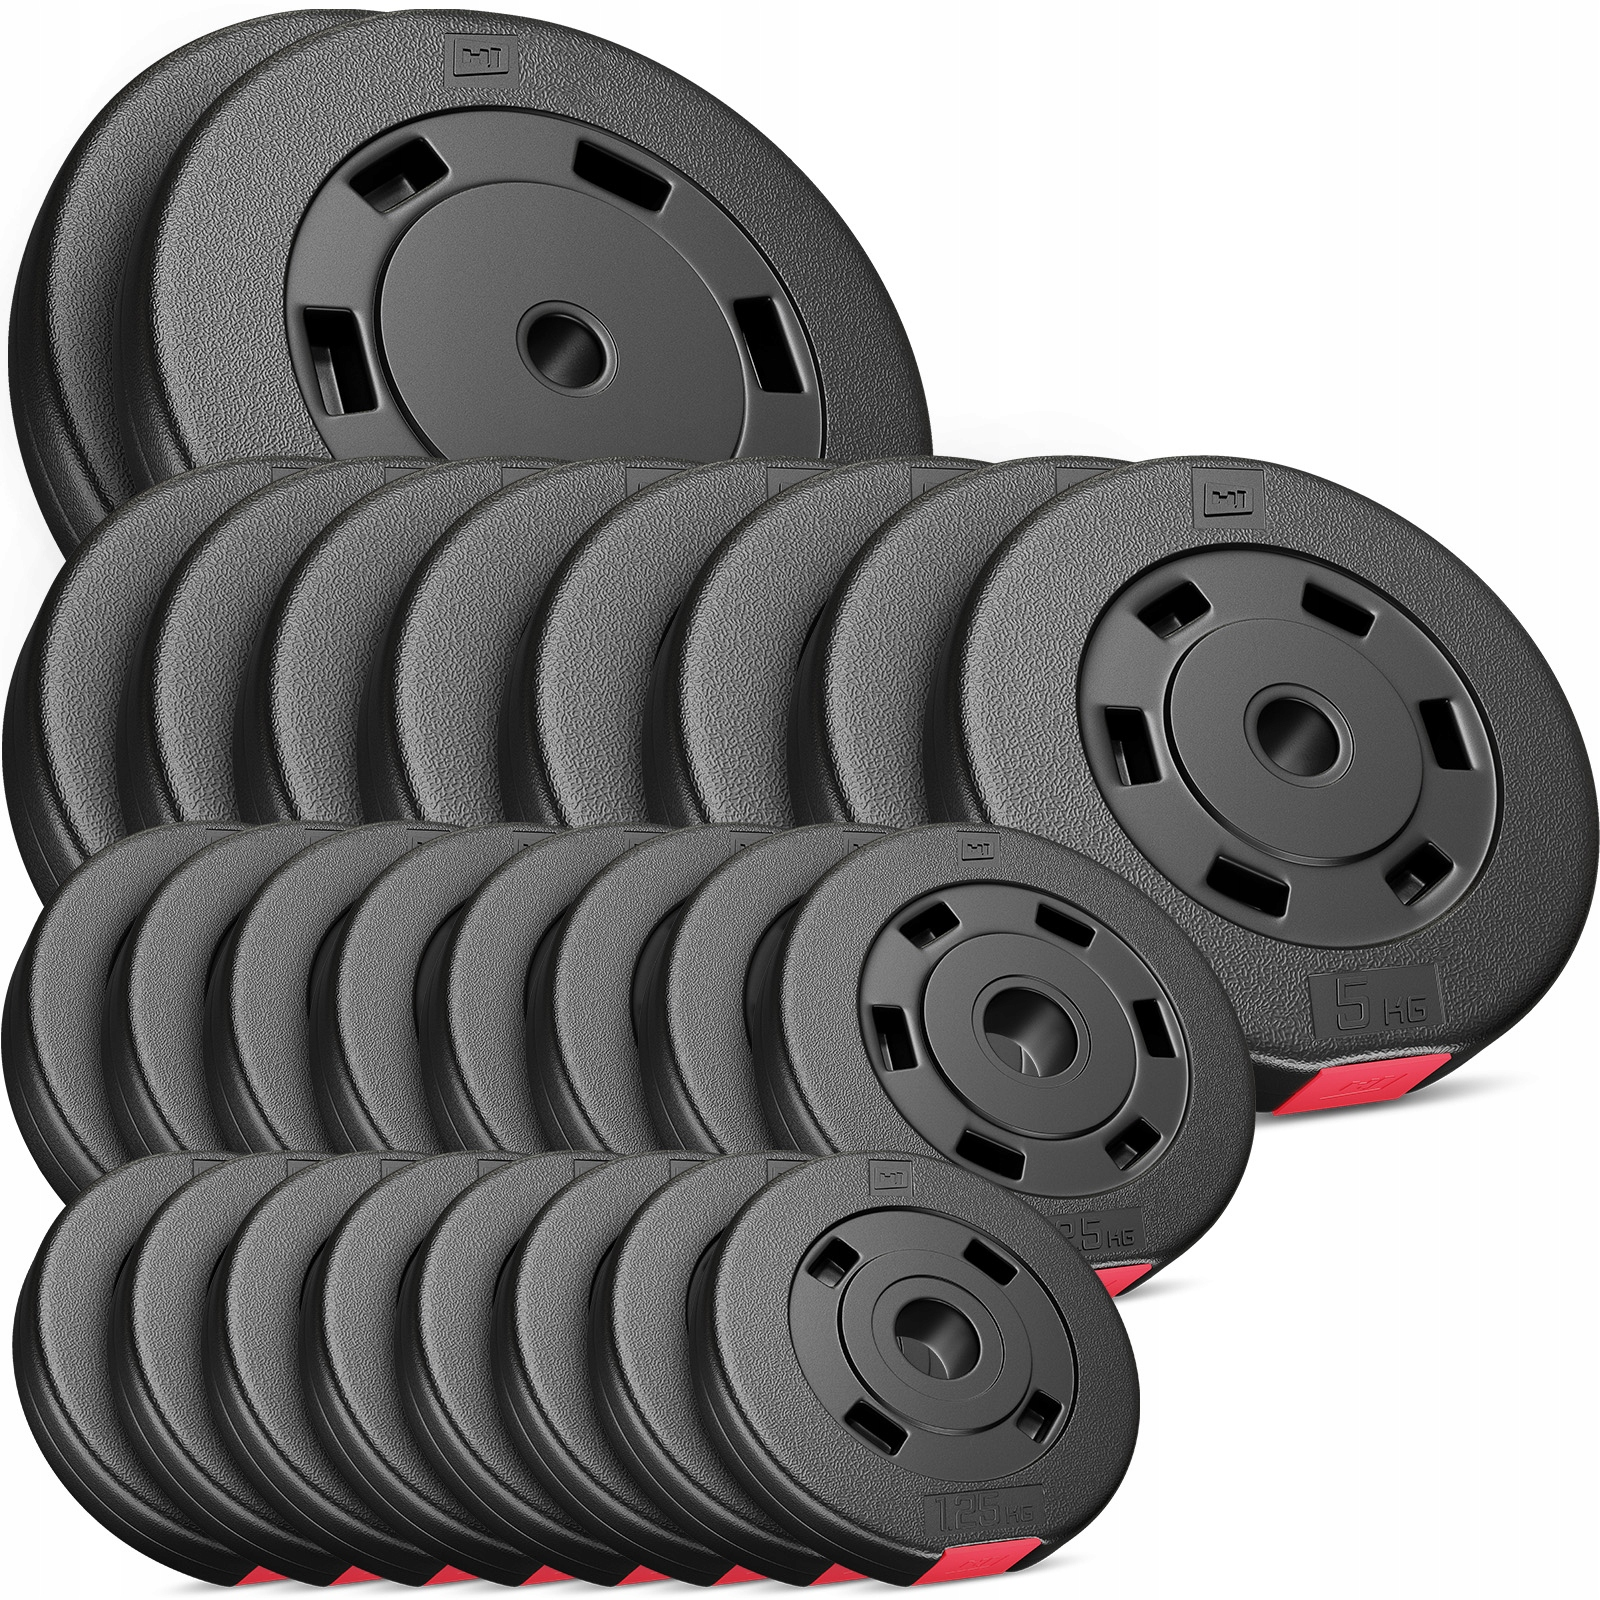 Bumpery Bumpery Bumpes WiDers 90 kg